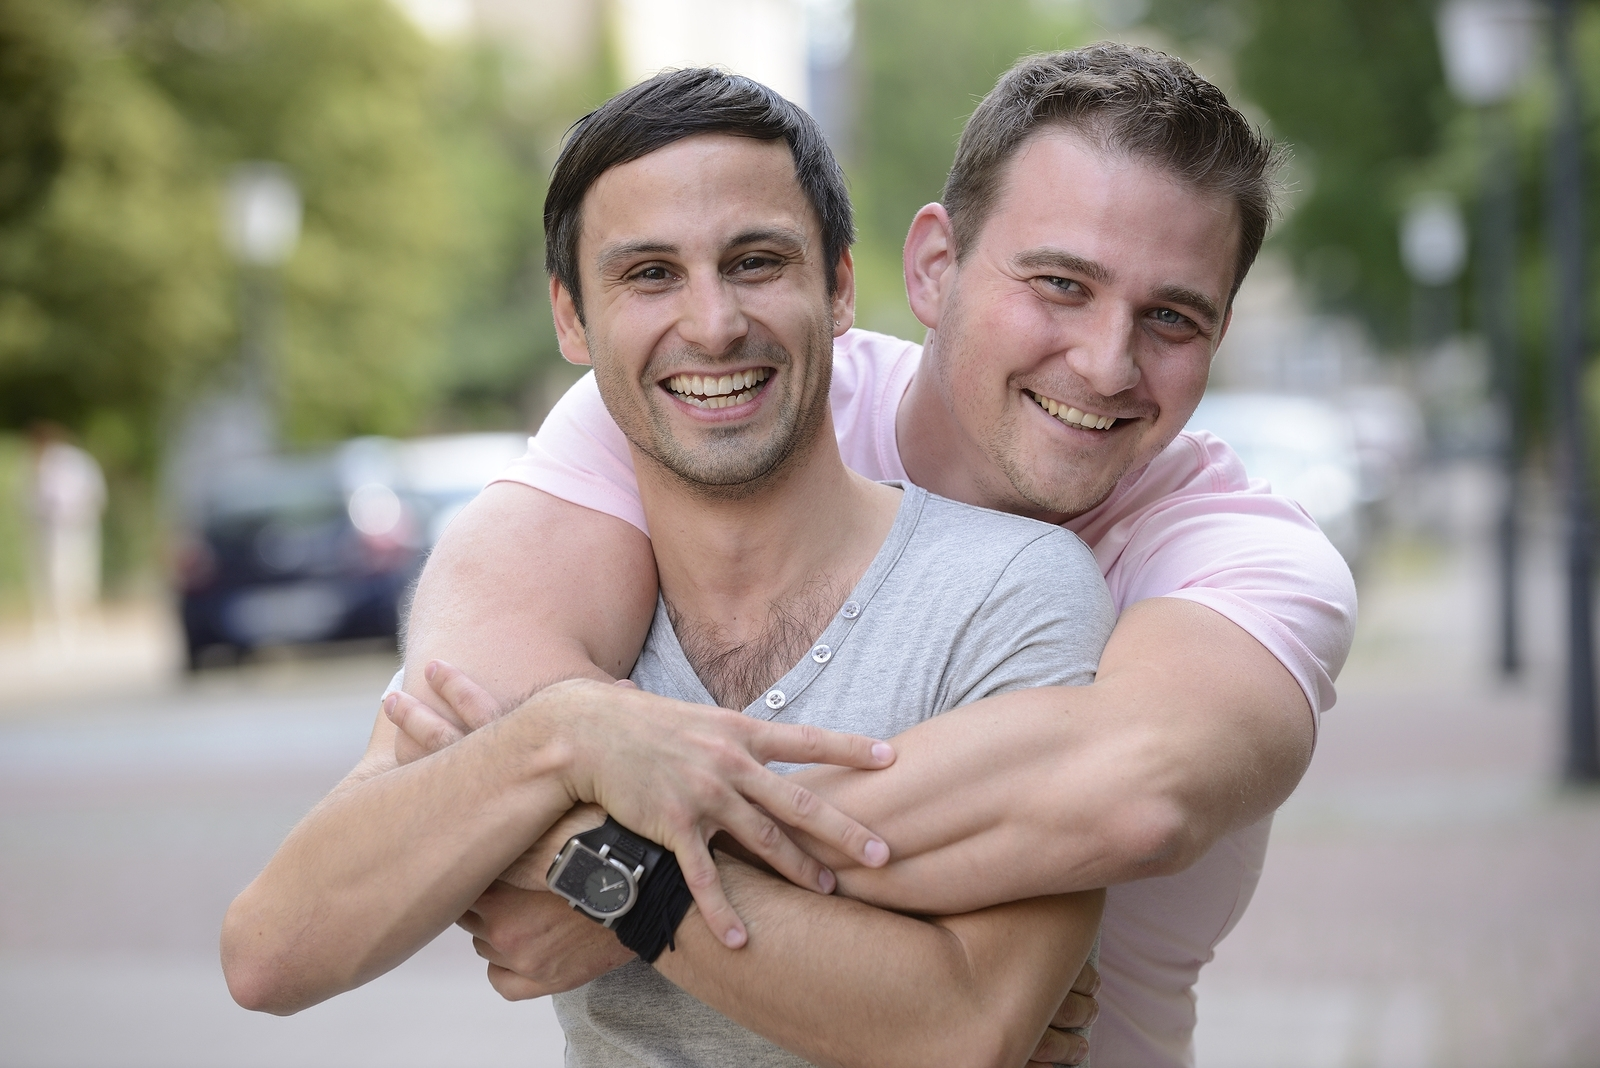 A gay couple stand outdoors as they look at the camera. A man is embracing his partner from behind, and both are smiling brightly. They are feeling good after meeting a lgbt ally in west bloomfield, mi at Therapyology. We offer lgbtq therapy in west bloomfield, mi, lgbt affirmative therapy in west bloomfield, mi, gender therapy in west bloomfield, mi, and more.